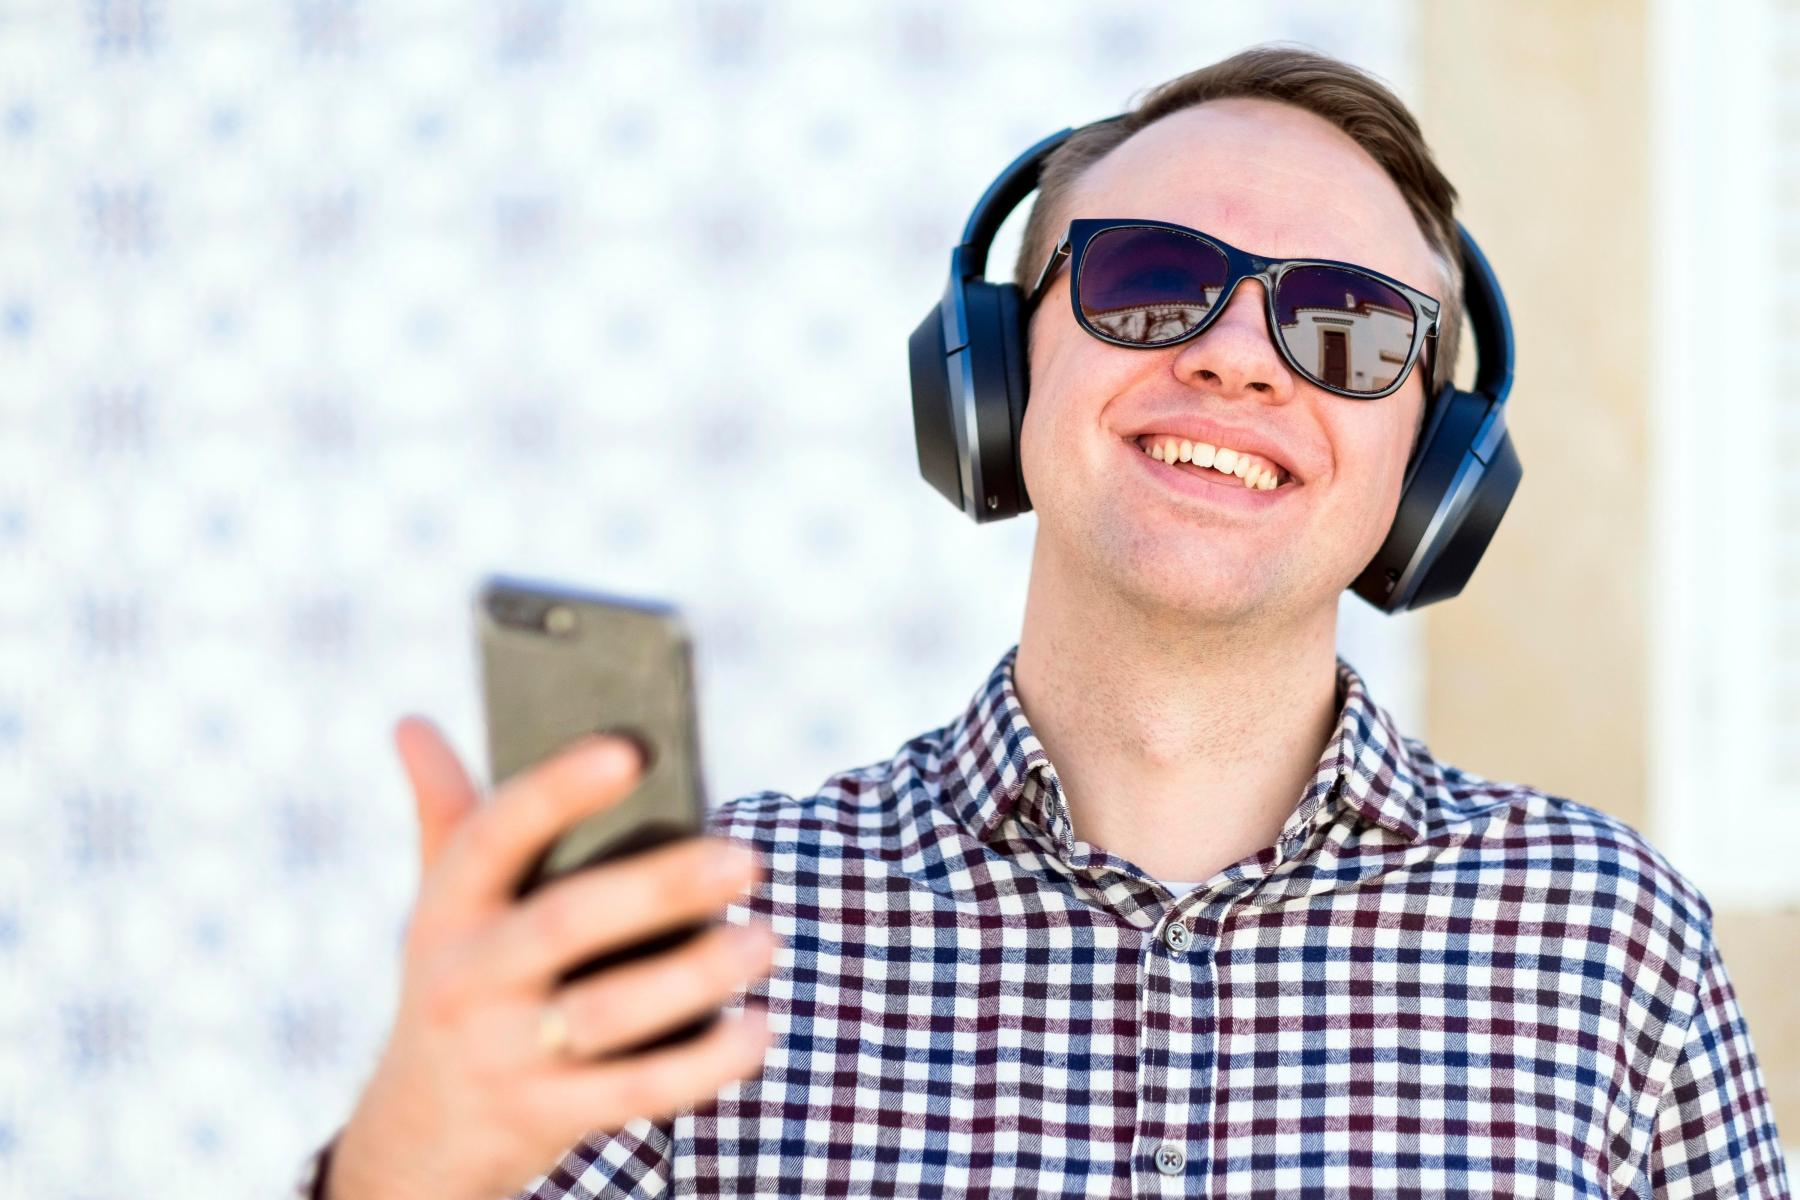 MODEL RELEASED Young man with modern, wireless bluetooth-headphones enjoying the music from his smartphoneVARIOUS